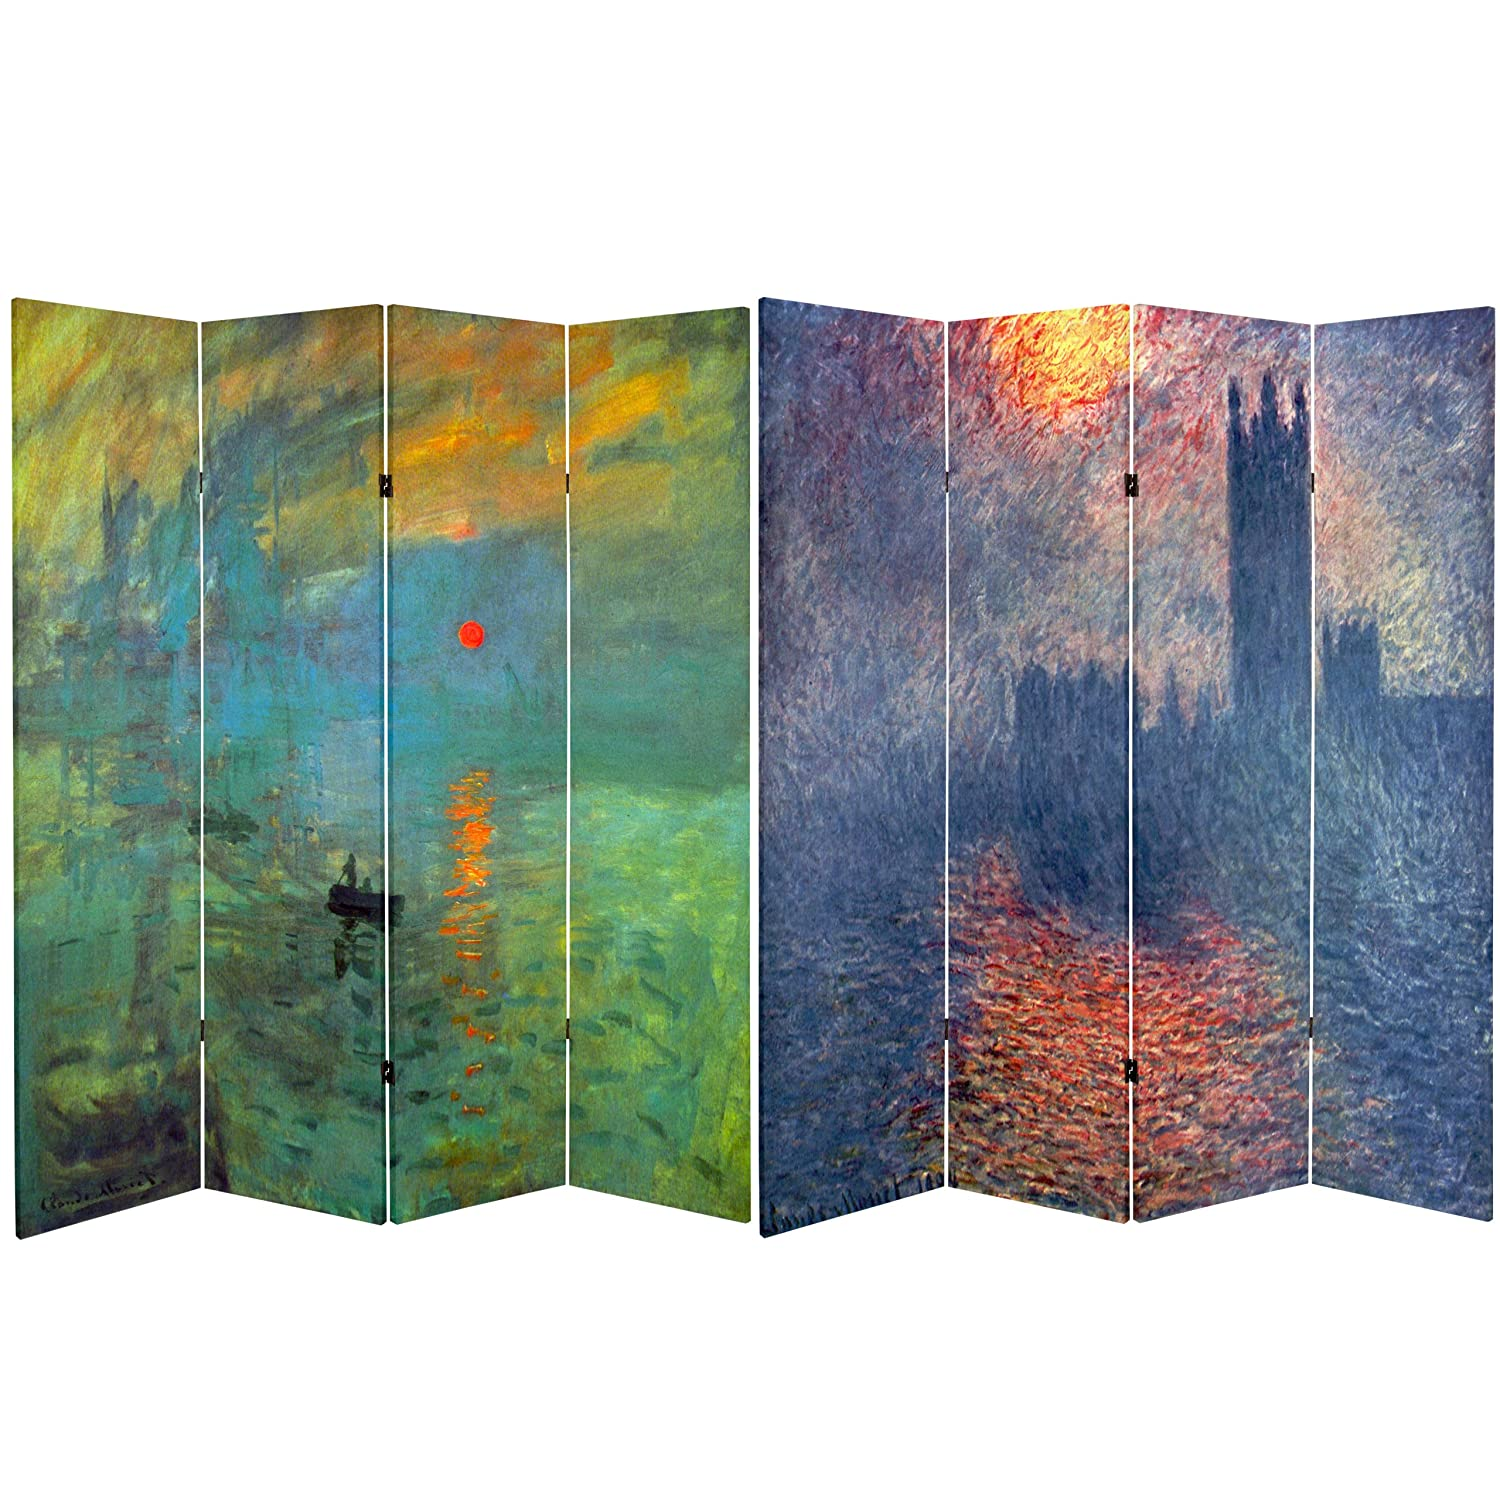 Oriental Furniture Double Sided Works of Monet Canvas Room Divider, 6-Feet Tall, Impression Sunrise/Houses of Parliament CAN-MONET4AB